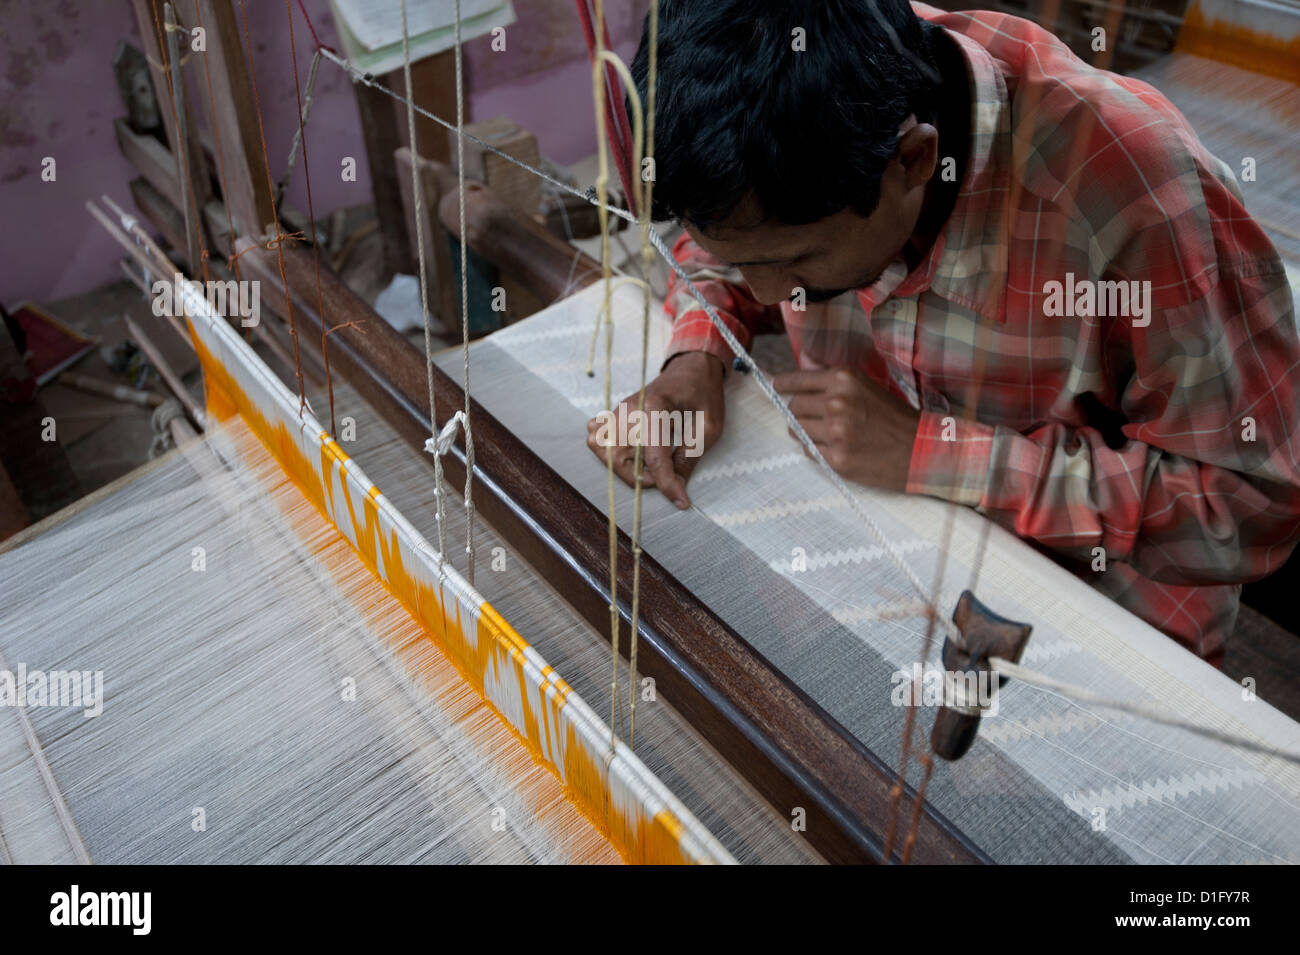 Weaver working in Ramdani method, using both domestic loom and needles, weaving undyed cotton lawn, Kalna, West - Stock Image